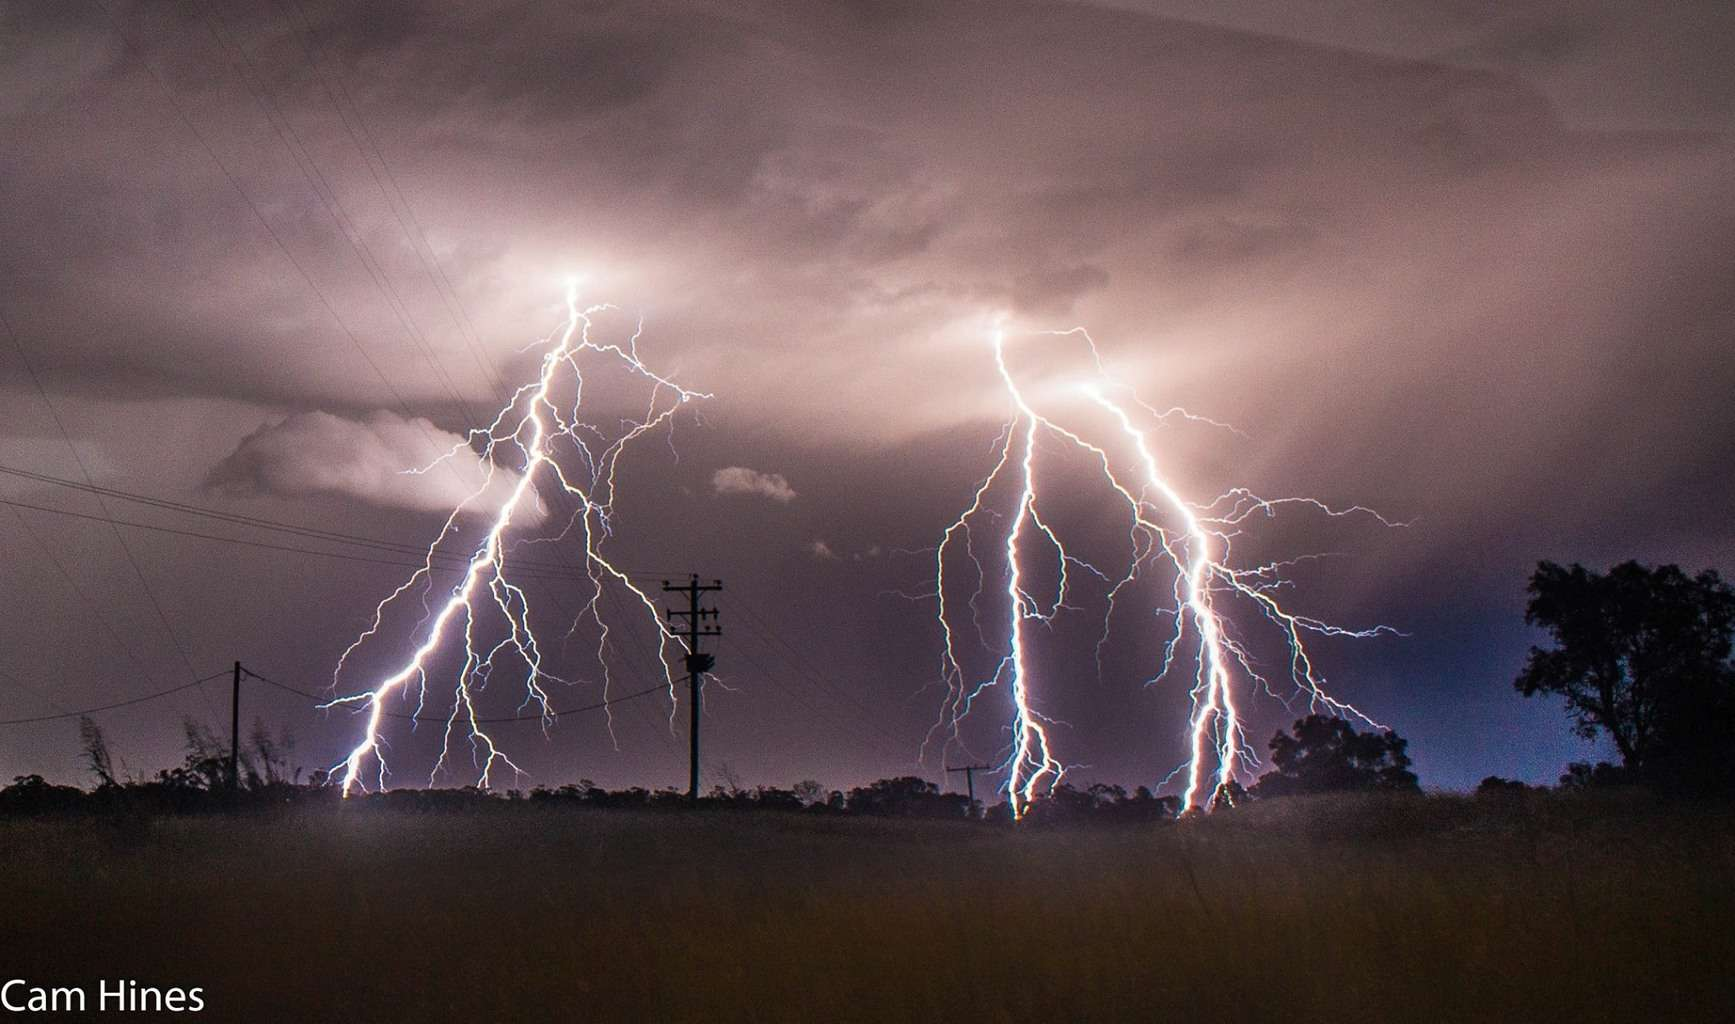 One discharge of lightning which picked out 3 chunks of soil to earth out in.. This photo was from February 26 this year in Wallumbilla, QLD Australia.